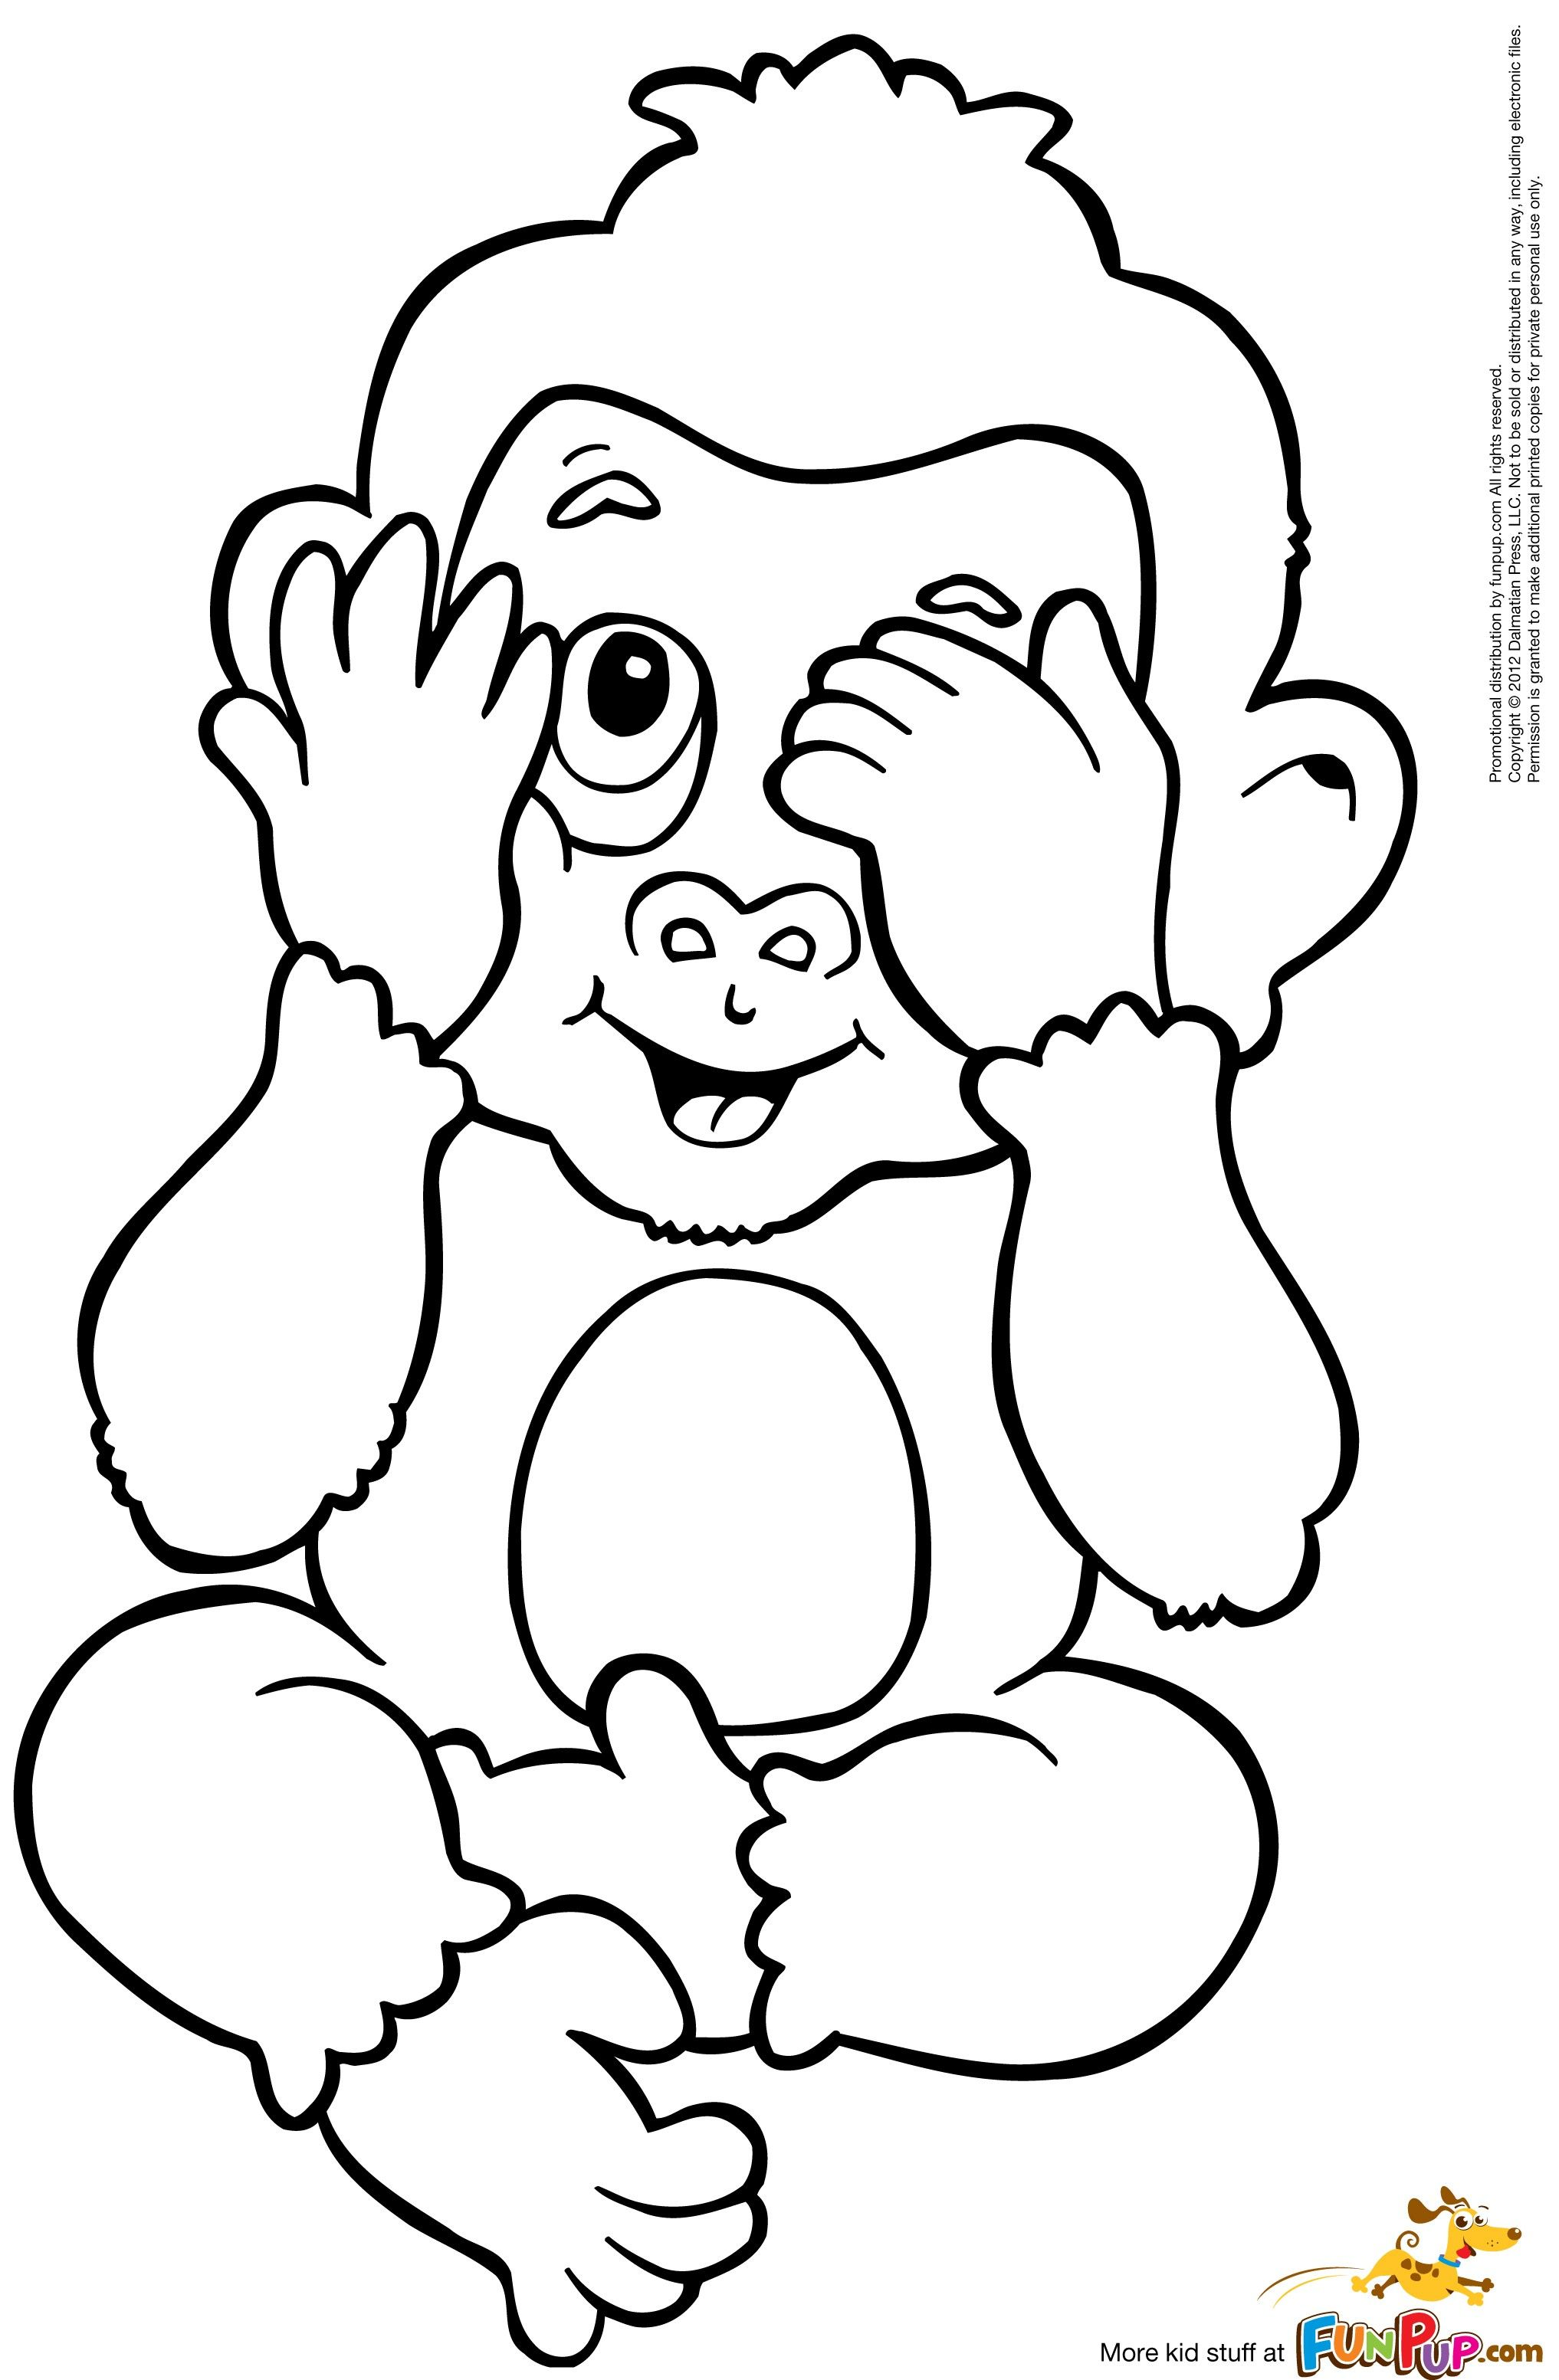 Cute Baby Owl Coloring Pages Pictures | Online Images Collection ...